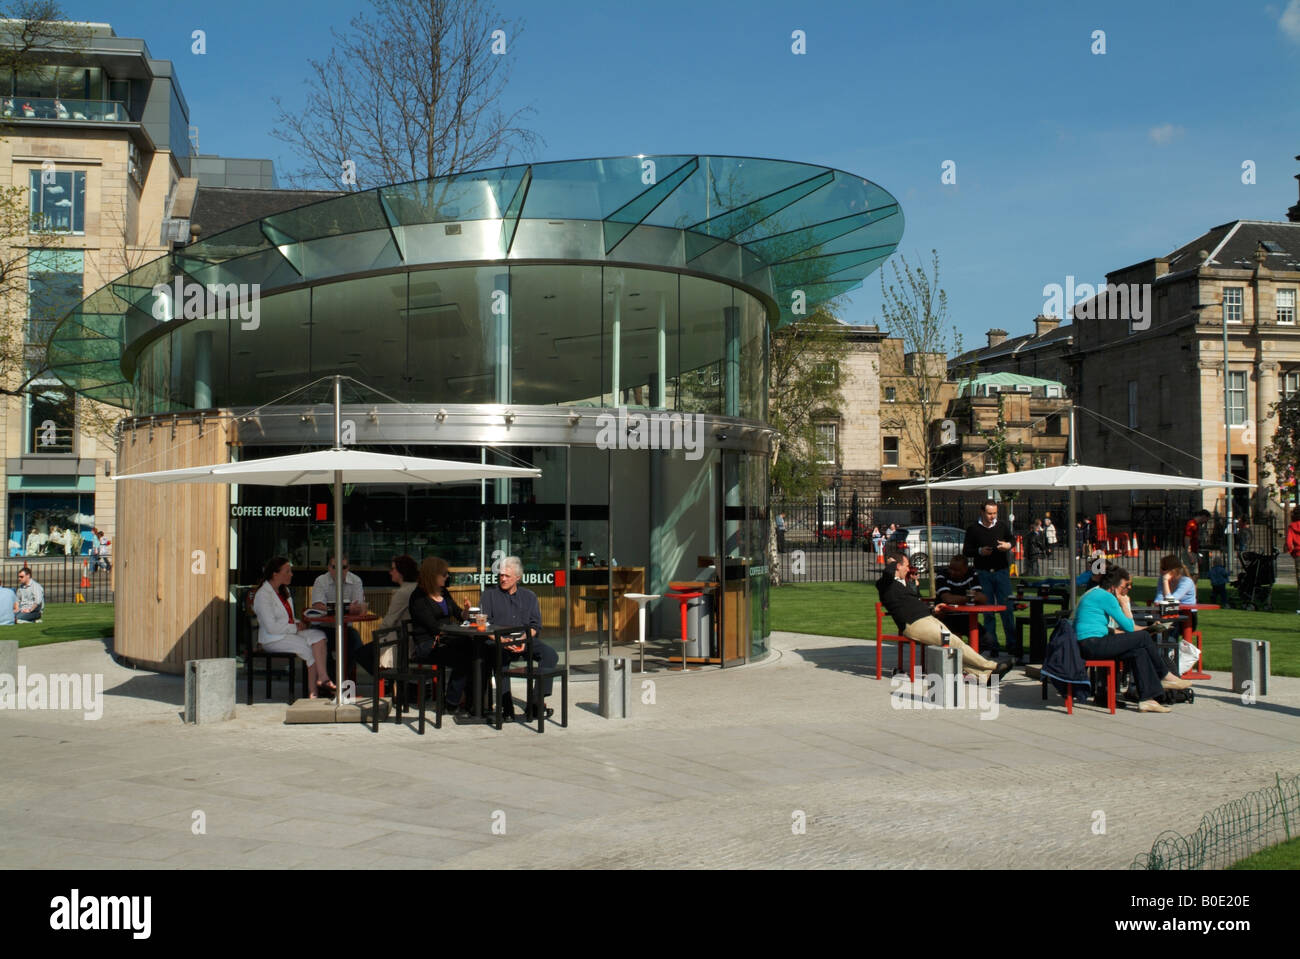 The new coffee pavilion in St Andrew Square gardens, Edinburgh. Stock Photo